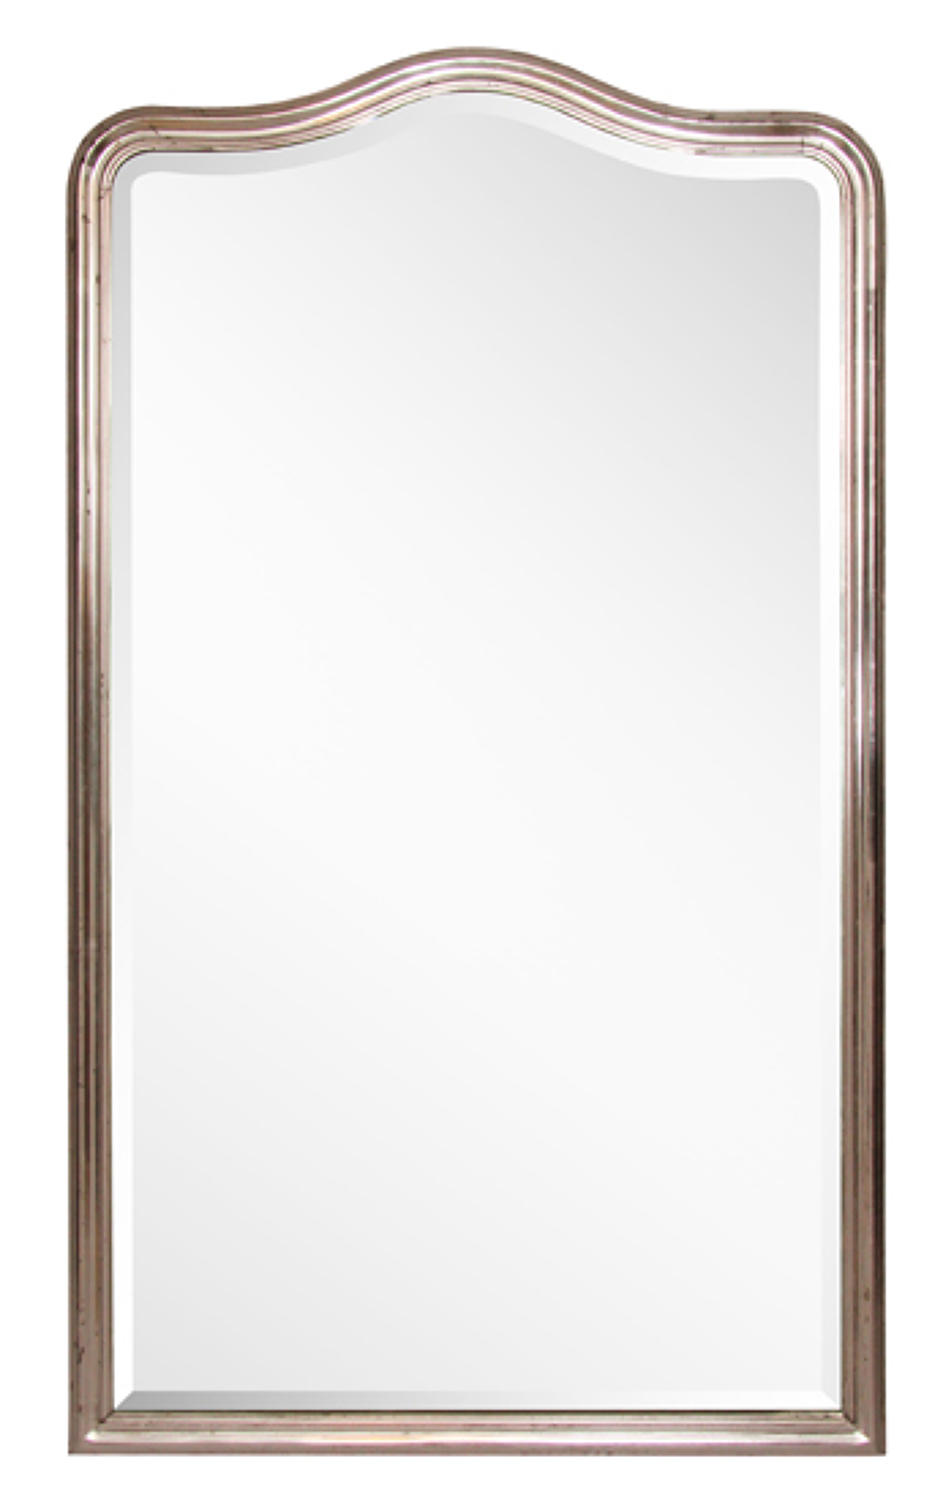 1860's French Silver Gilt Mirror with Original Bevelled Glass